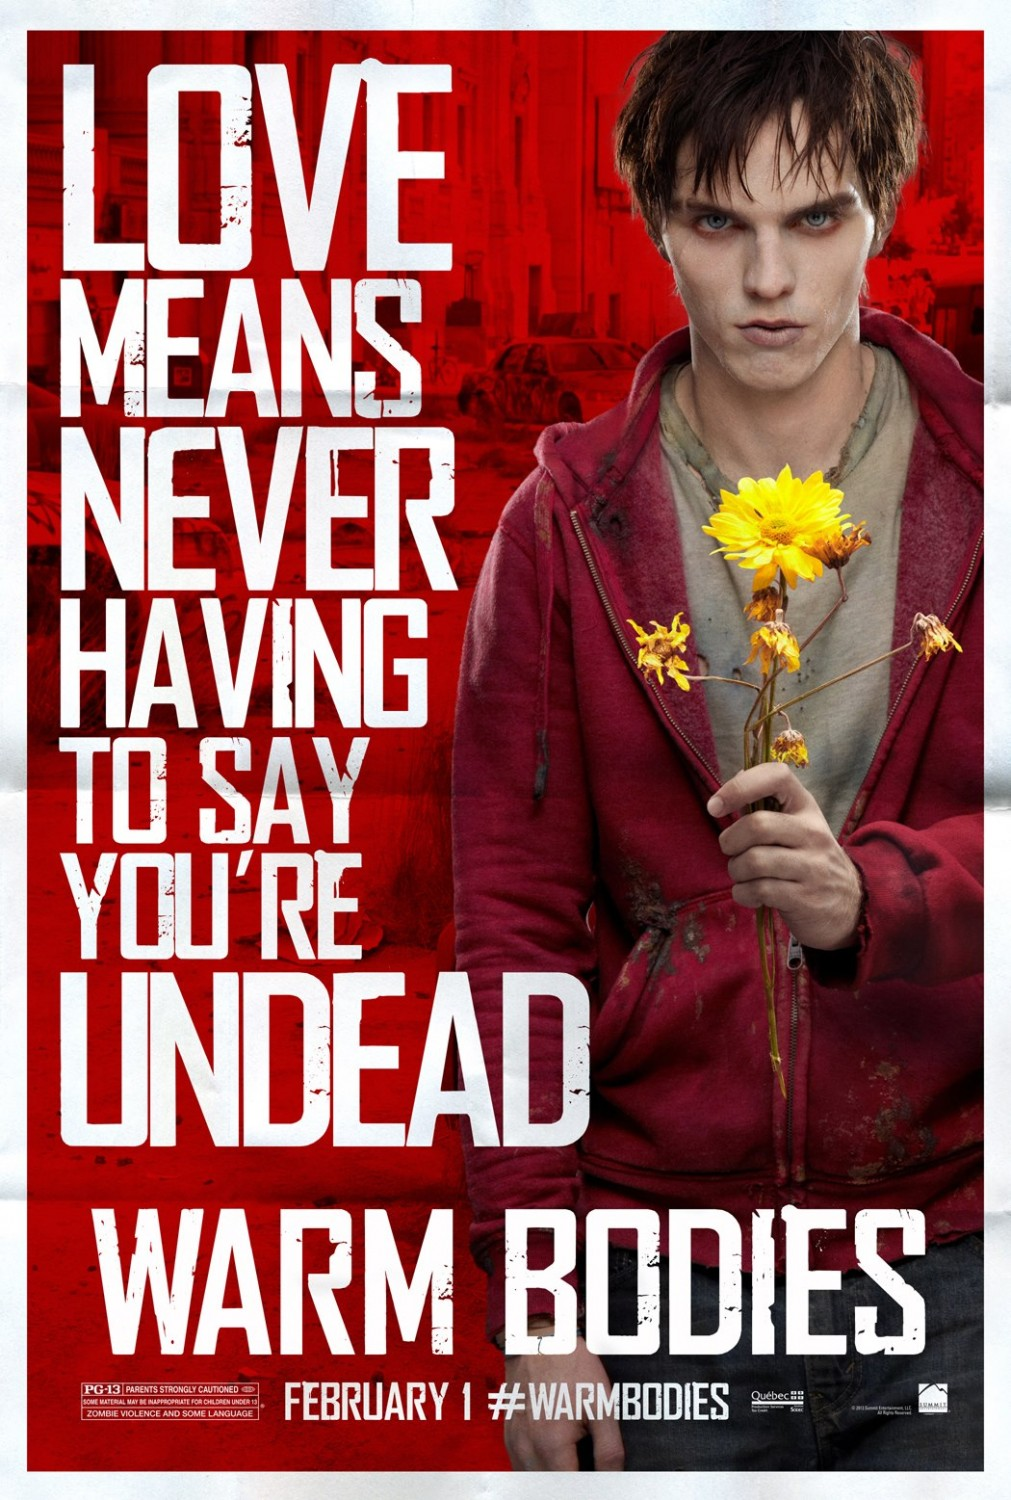 Warm Bodies: Movie Girl's Debut Review!